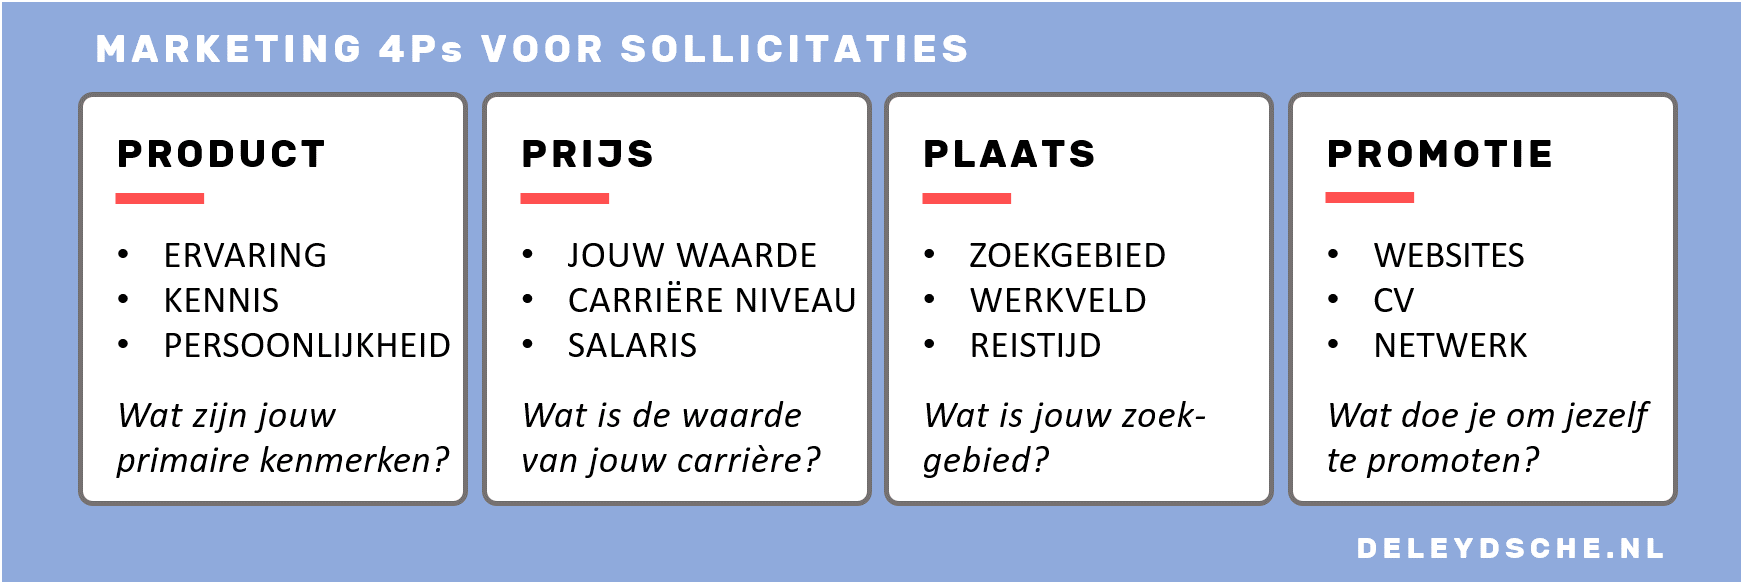 sollicitatie marketing 4P's